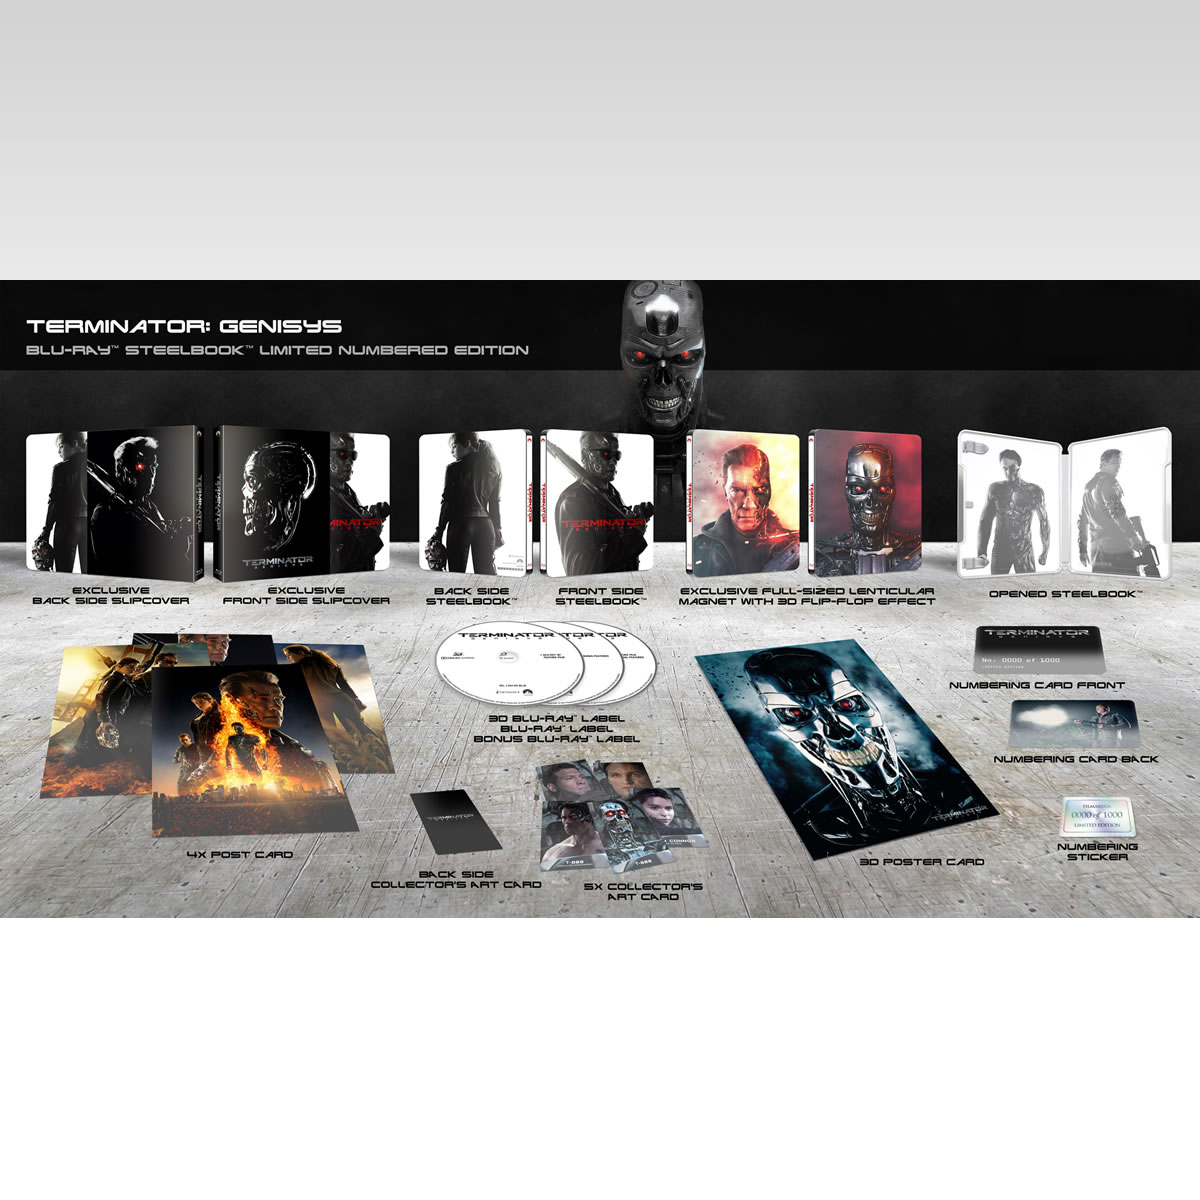 TERMINATOR 5: GENISYS 3D - ΕΞΟΛΟΘΡΕΥΤΗΣ 5: ΓΕΝΕSYS 3D Limited Collector's Numbered Edition Steelbook + CARDS (BLU-RAY 3D + BLU-RAY)